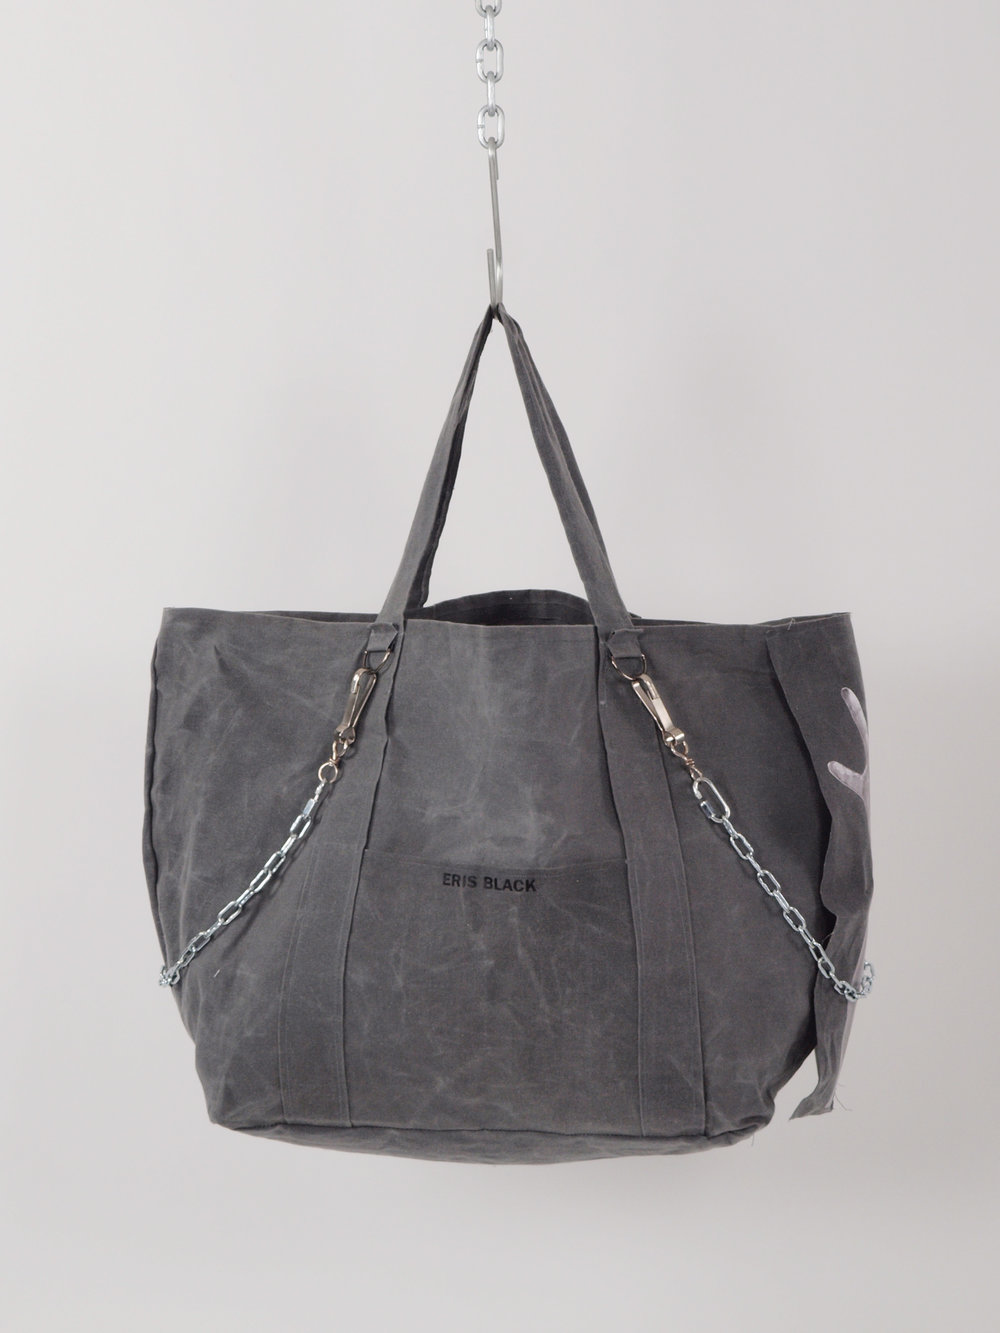 grey tote bag.jpg